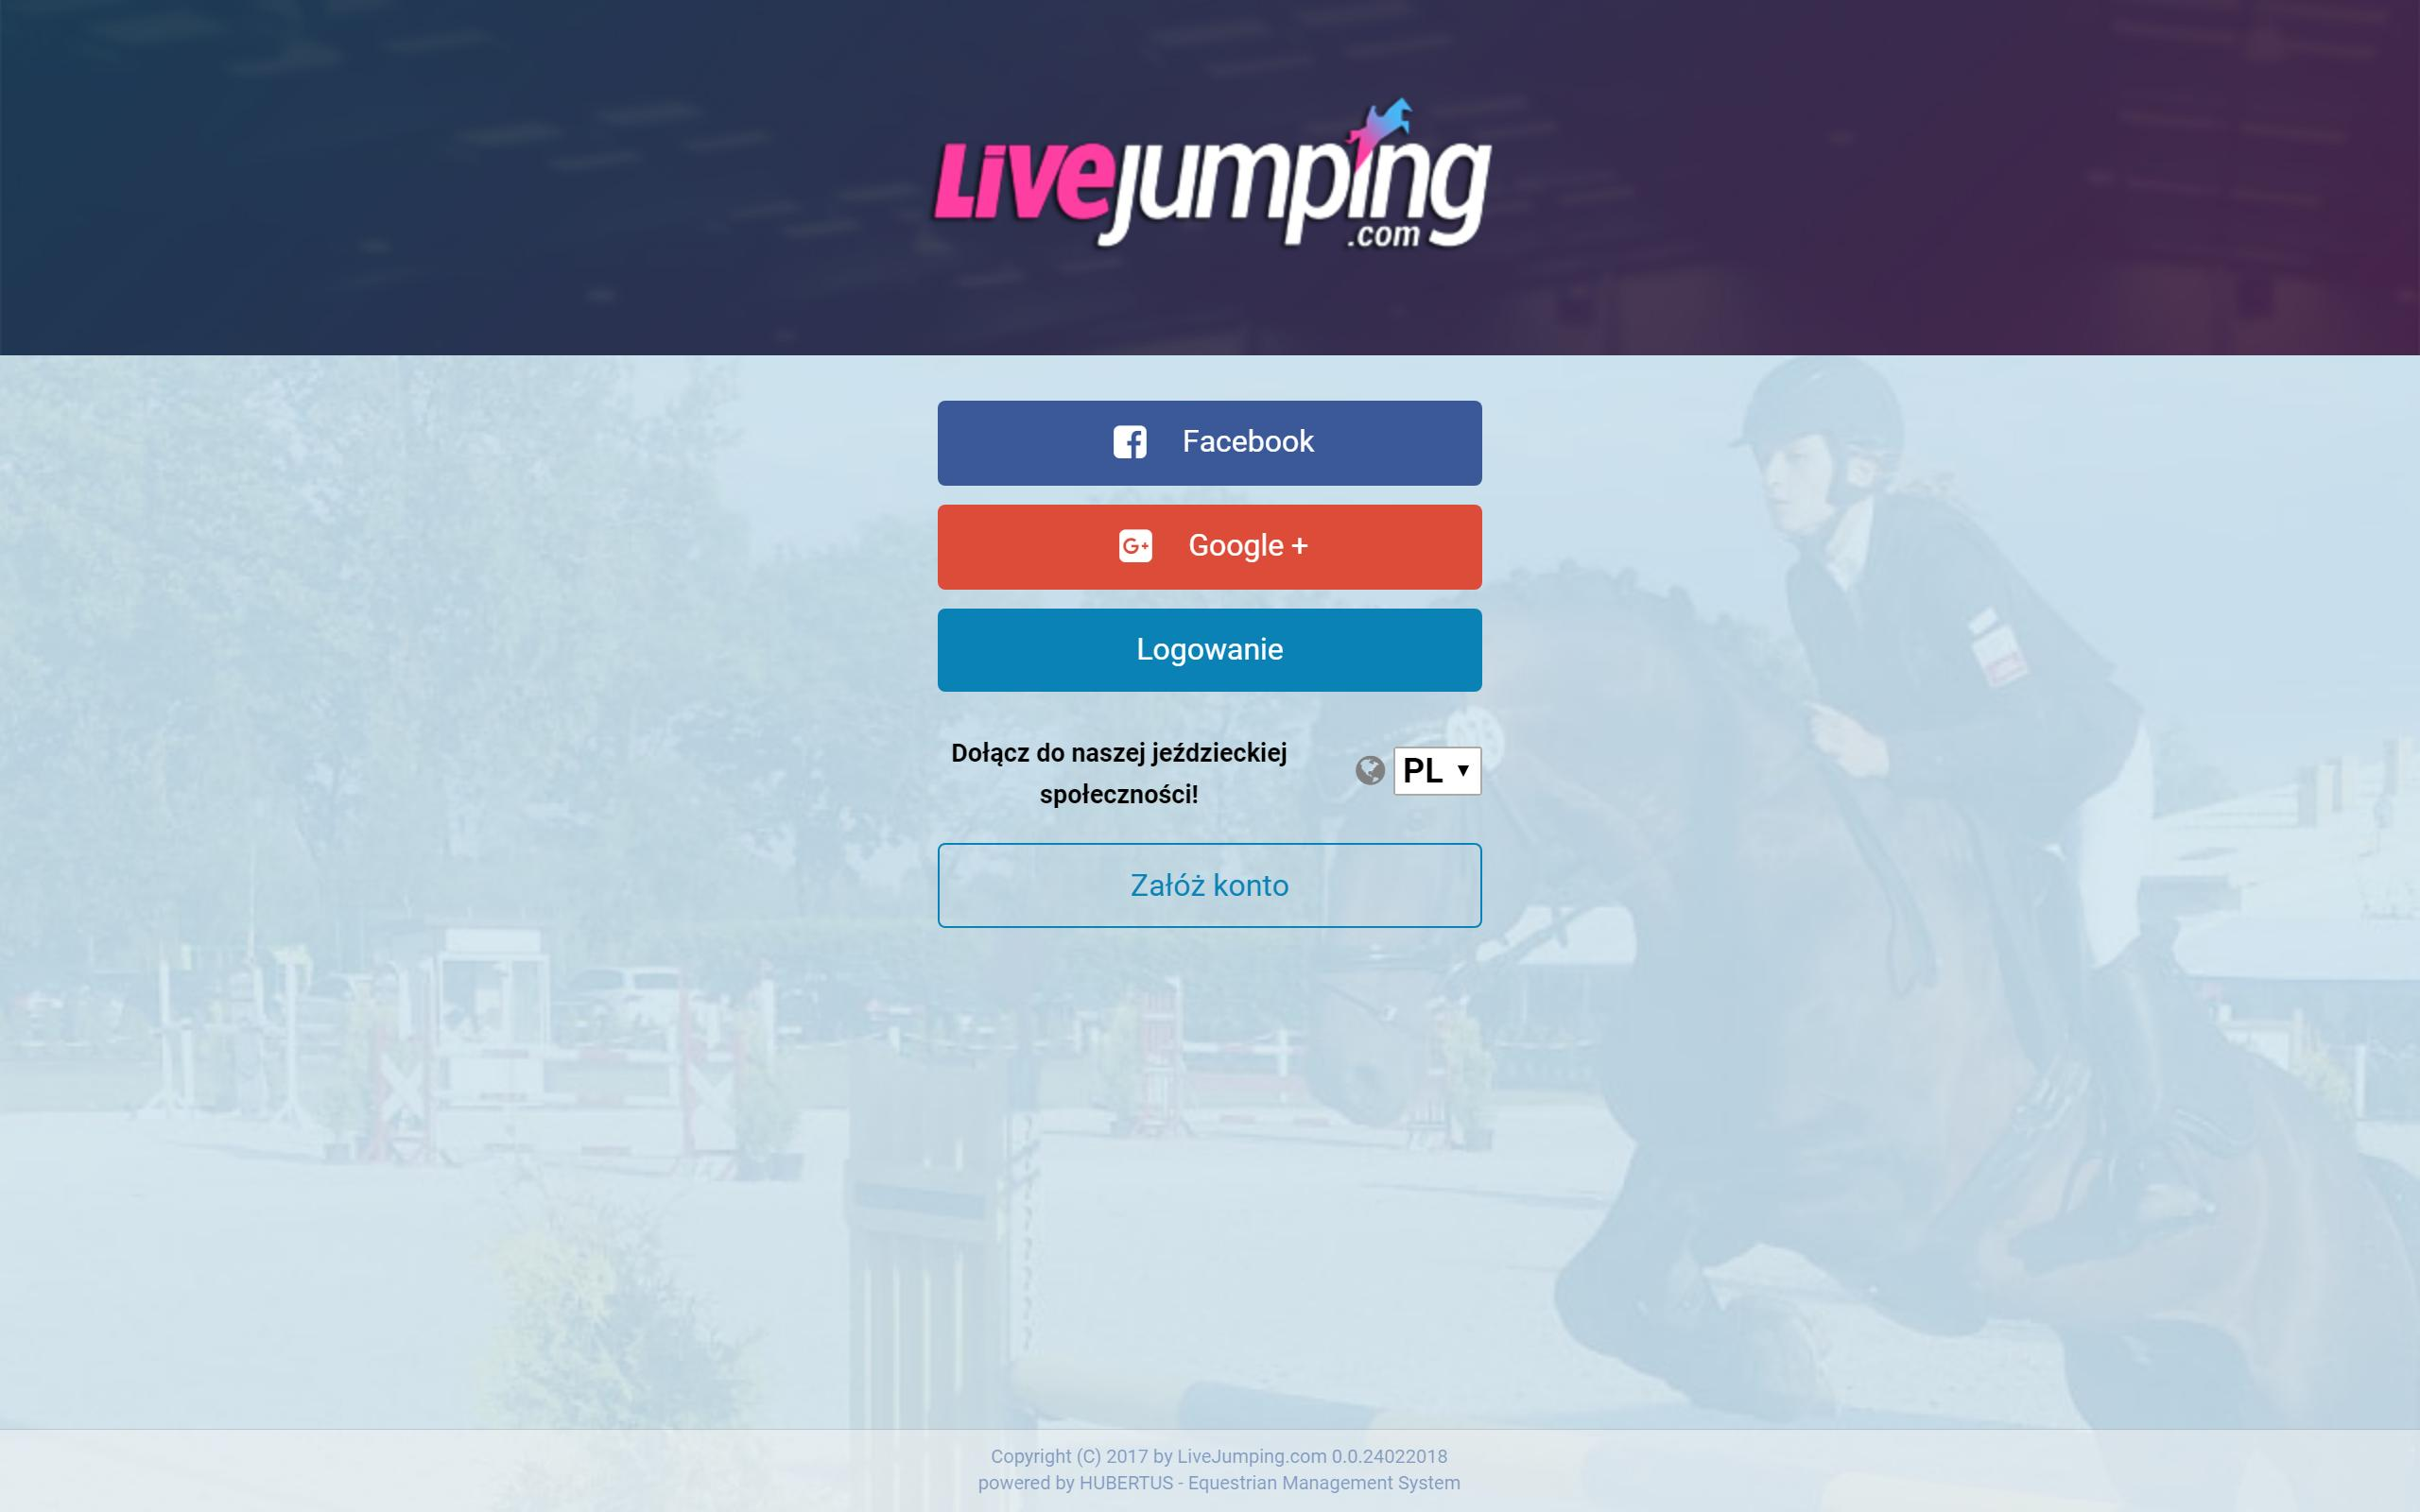 LiveJumping.com poster